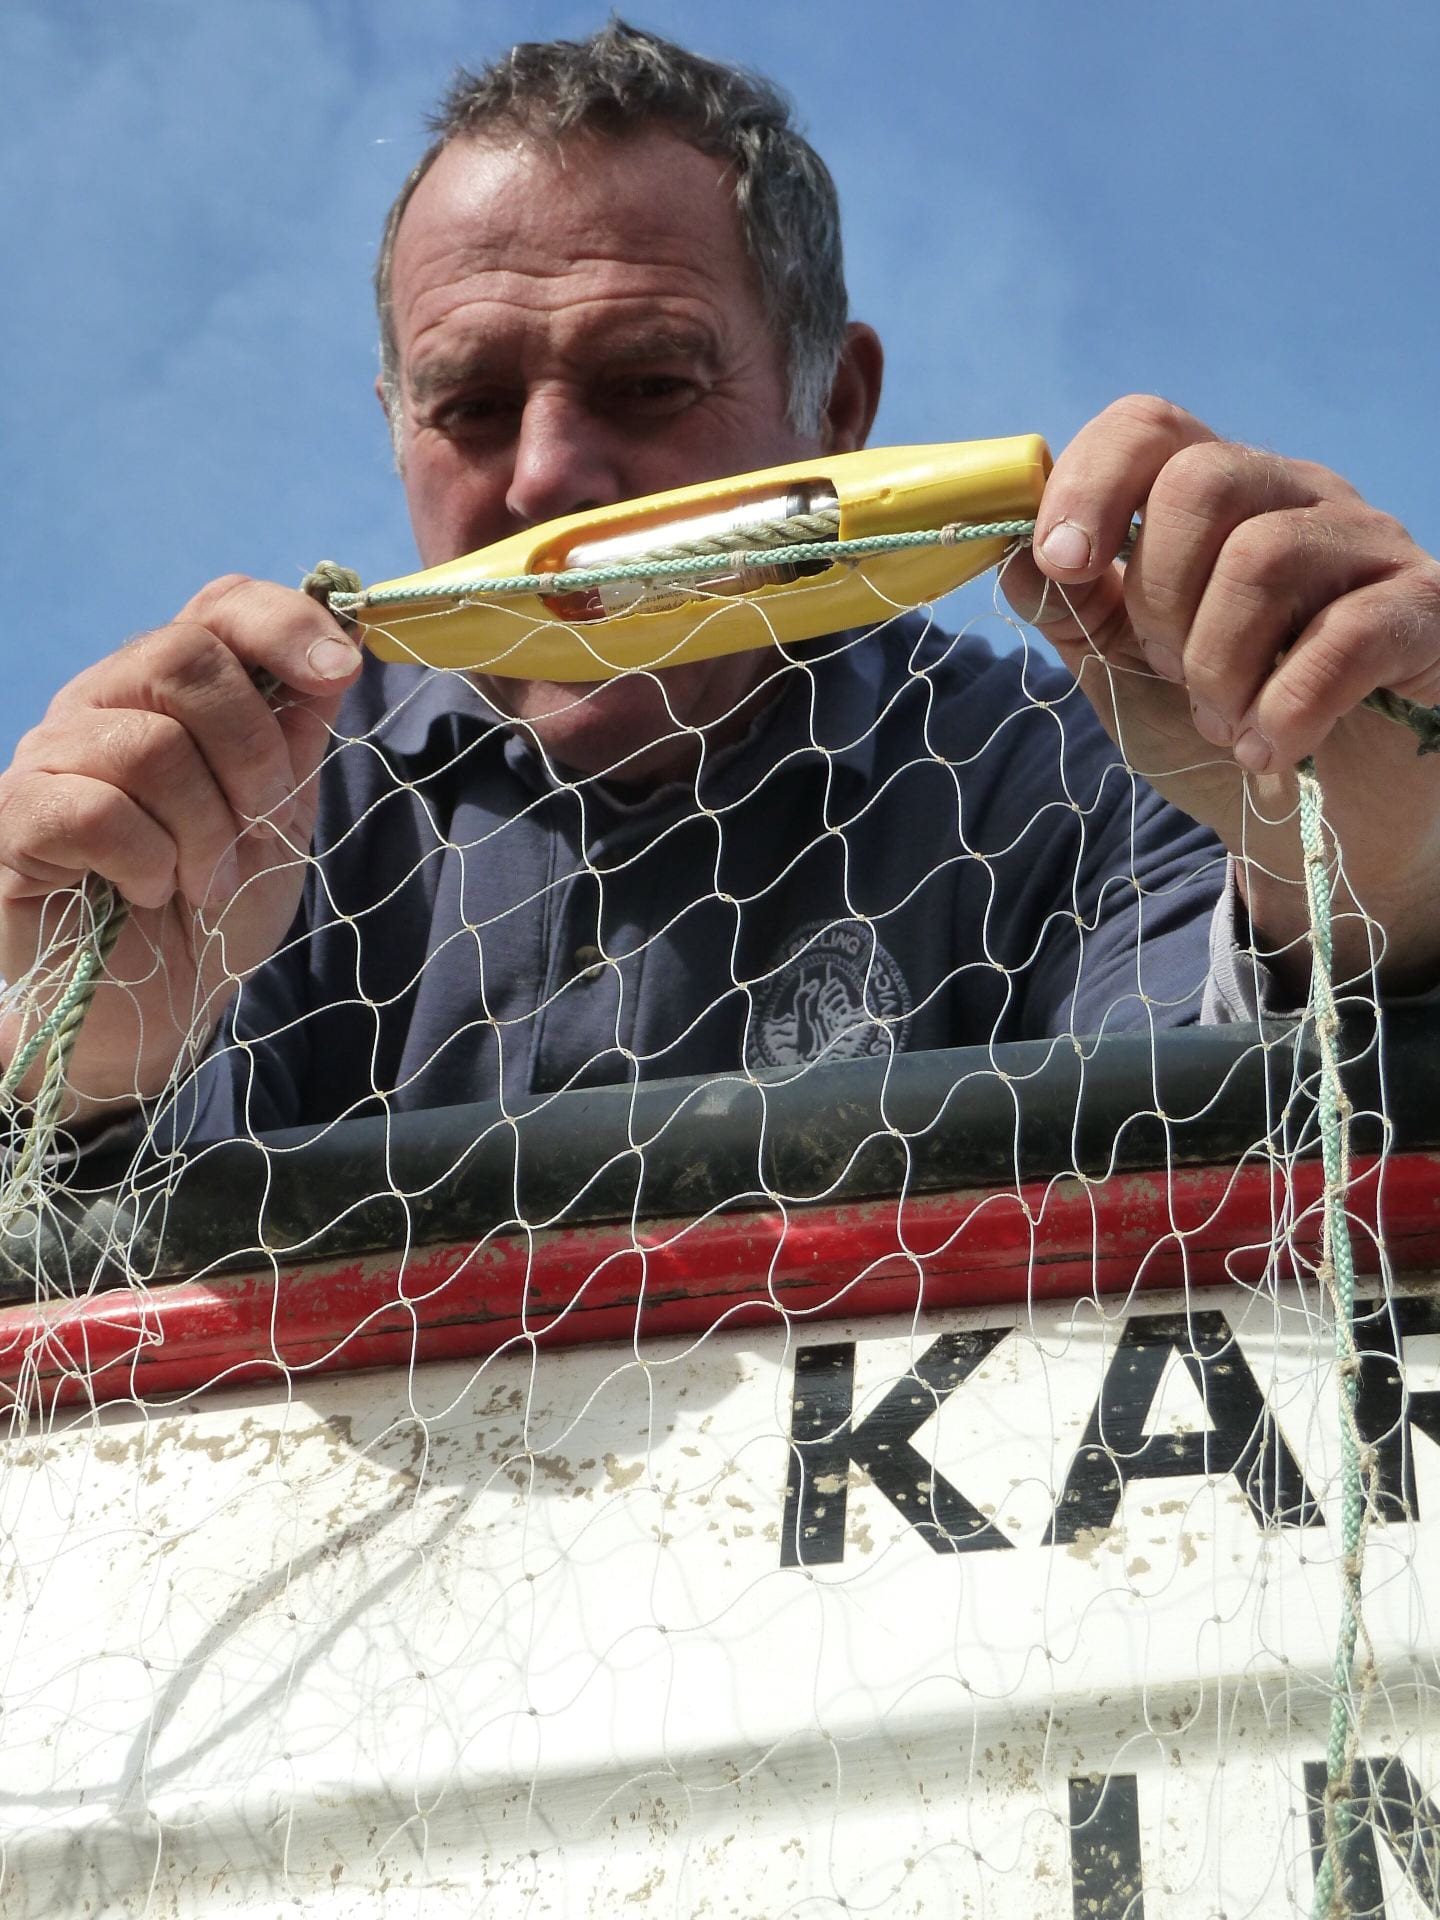 An old man holding up a net with a banana-shaped plastic attachment on the edge